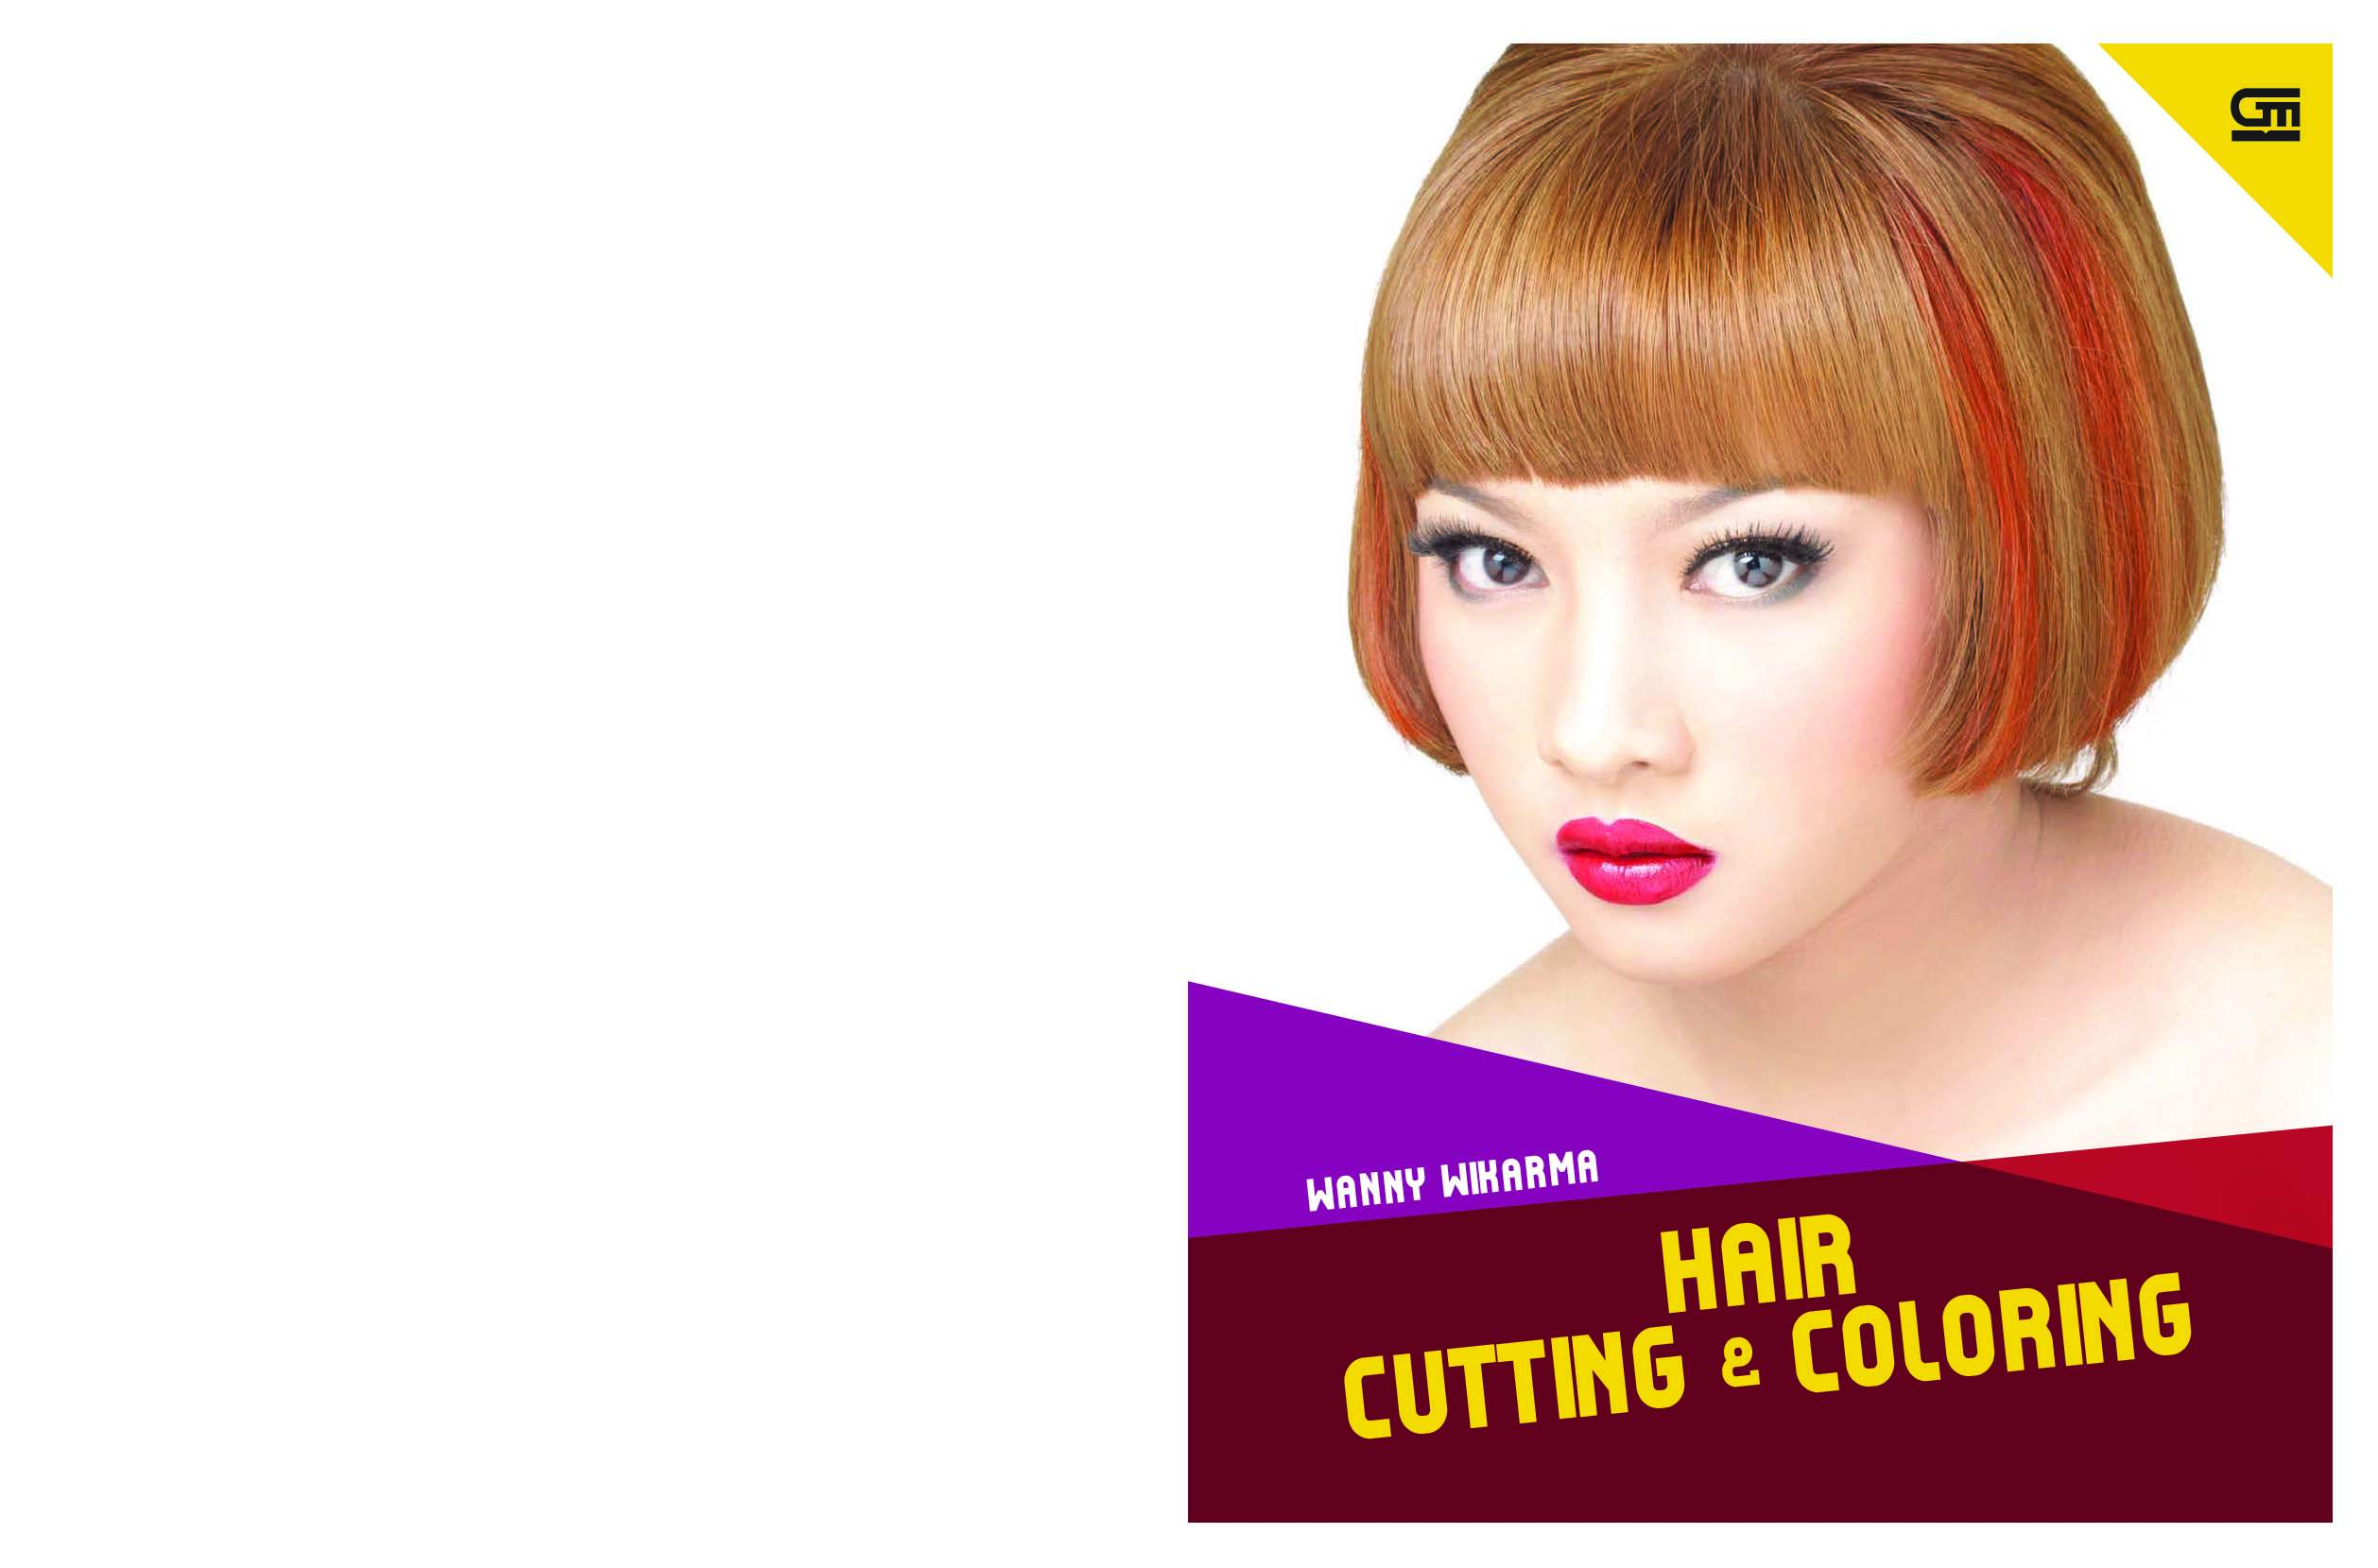 Hair Cutting Amp Coloring Book By Wanny Wikarma